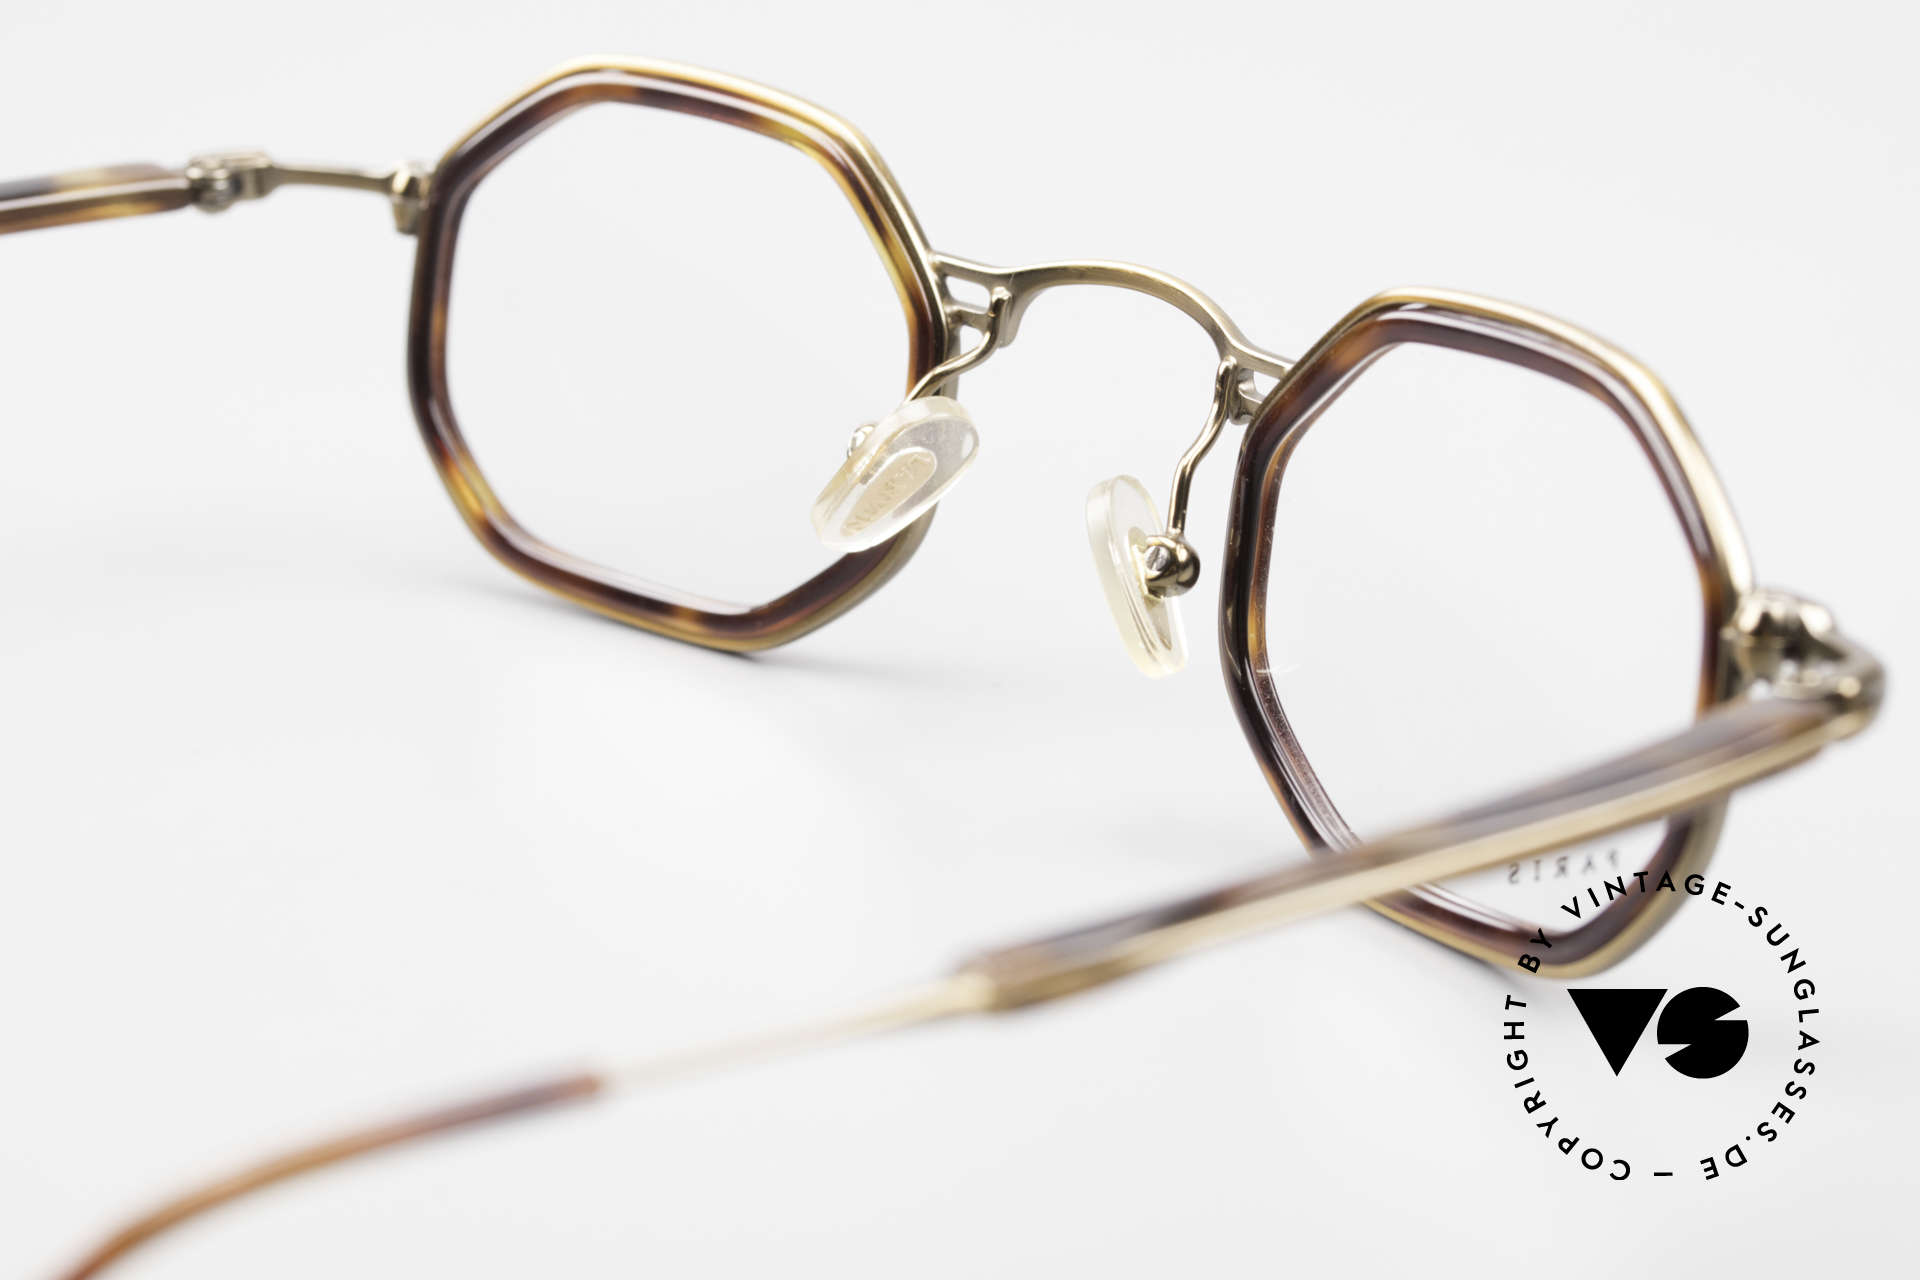 Lanvin 1222 Octagonal Combi Glasses 90's, DEMO lenses can be replaced with prescriptions, Made for Men and Women